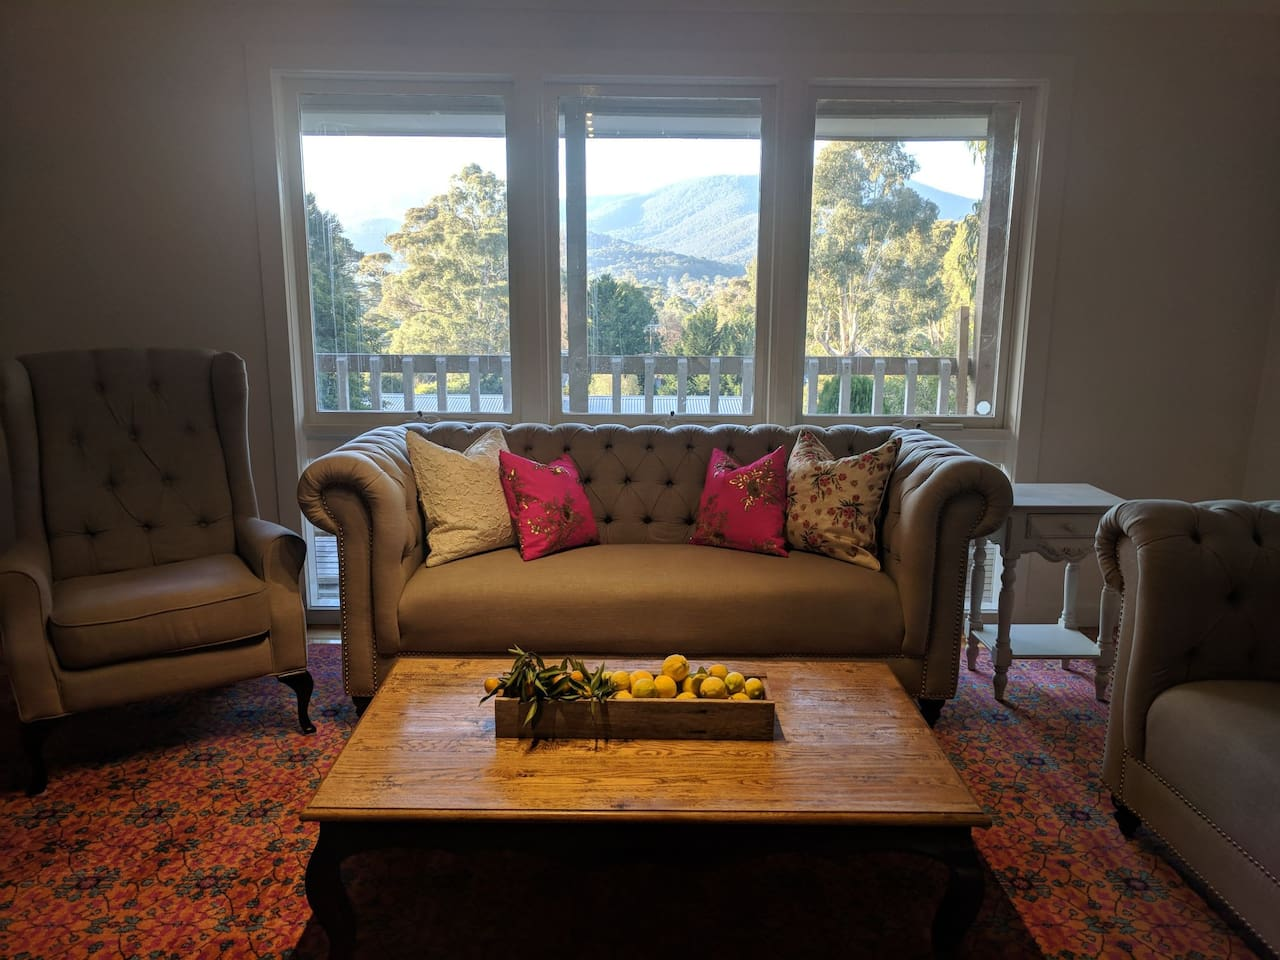 Cosy fire place with nice mountain views - newly renovated- more photos soon